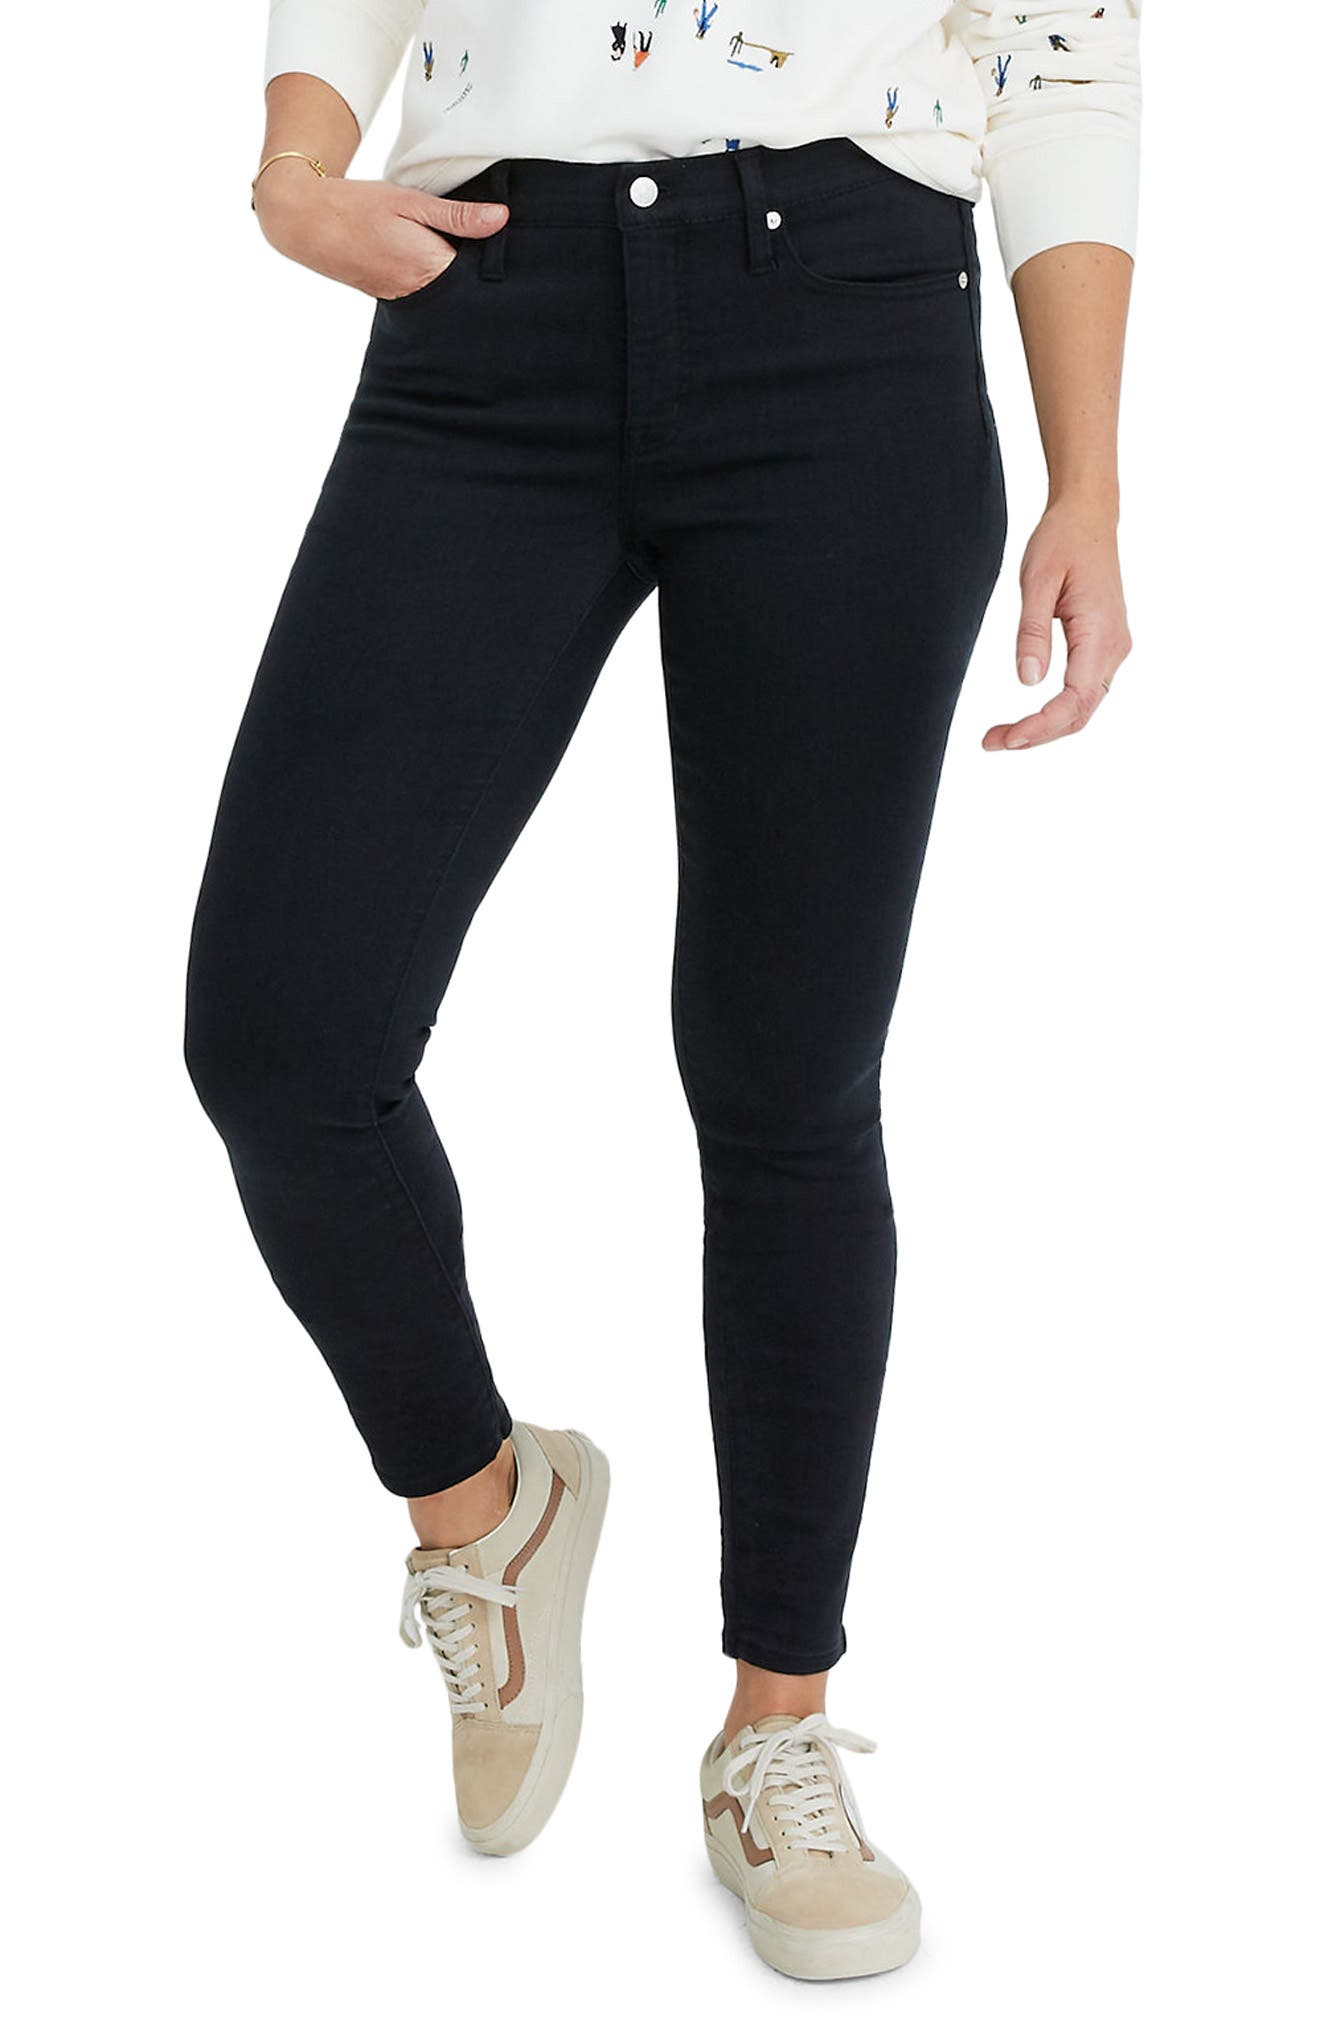 9-Inch High Waist Ankle Skinny Jeans: Tencel Edition